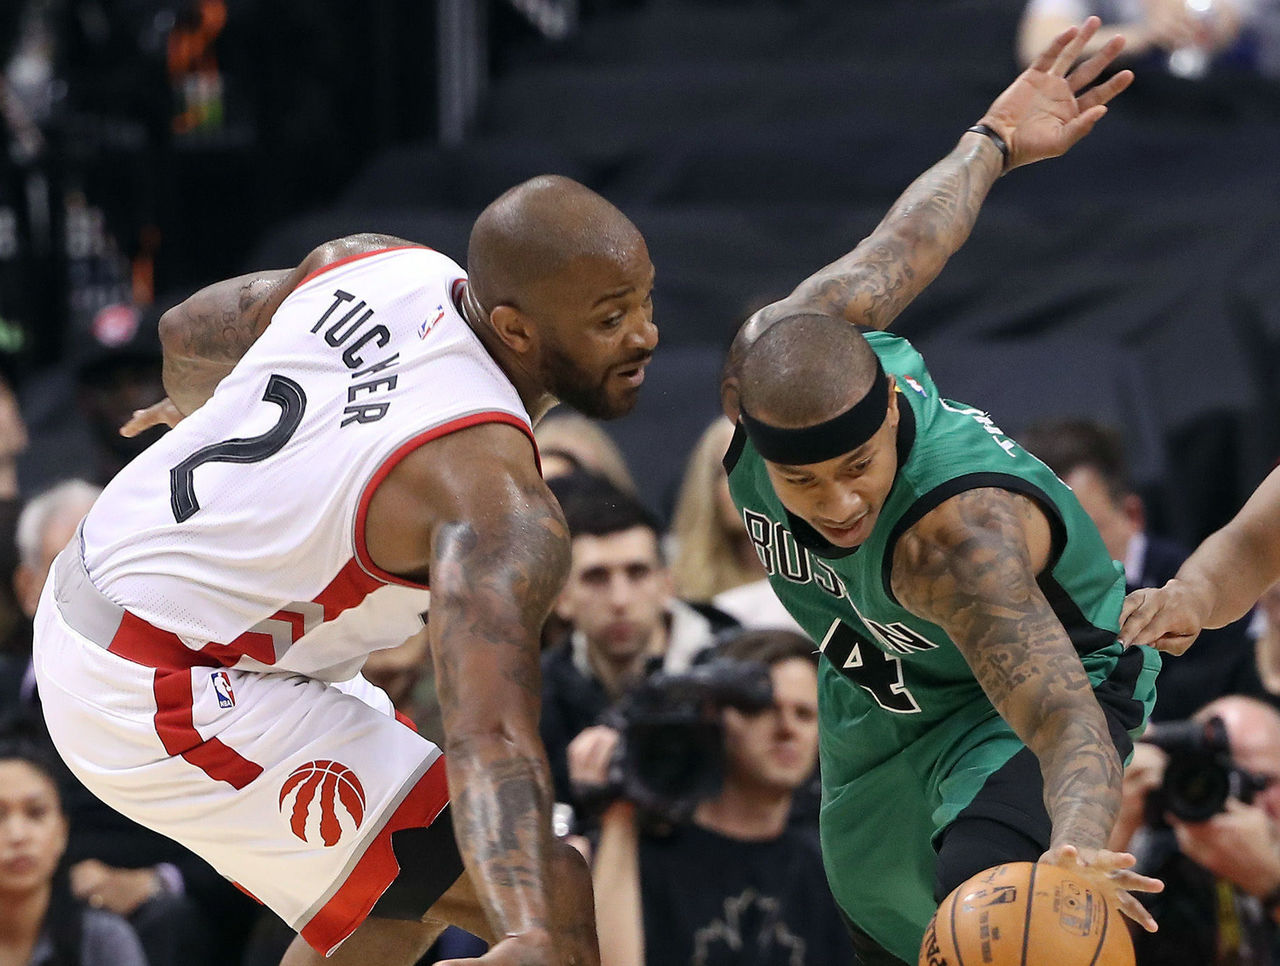 Cropped 2017 02 25t030648z 2132685026 nocid rtrmadp 3 nba boston celtics at toronto raptors